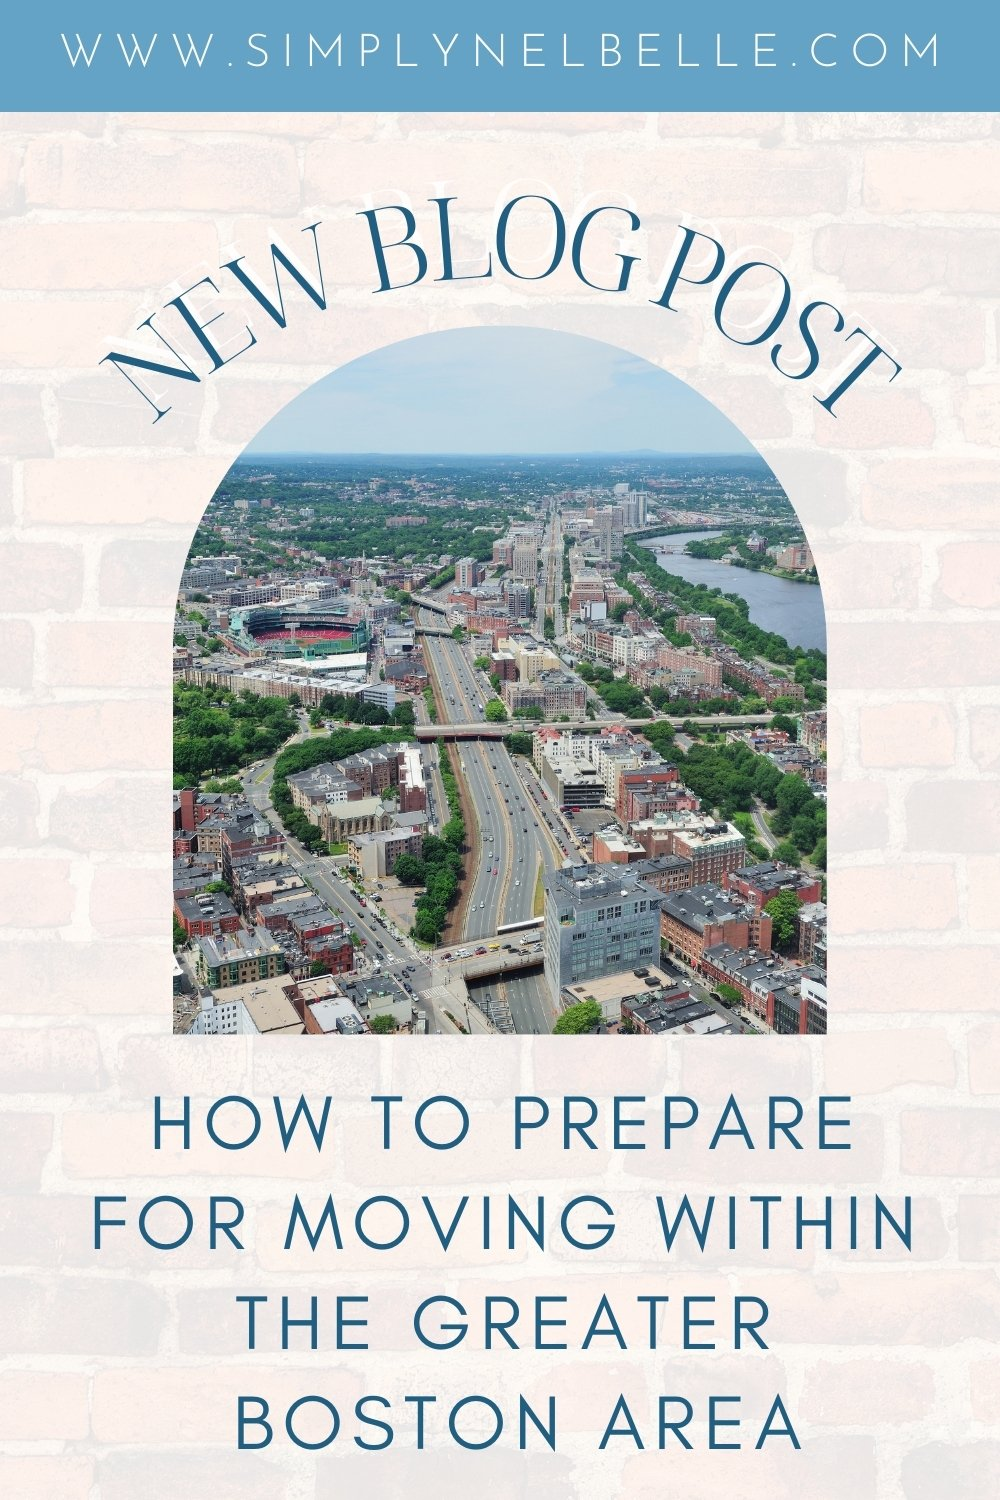 Moving Within the Greater Boston Area